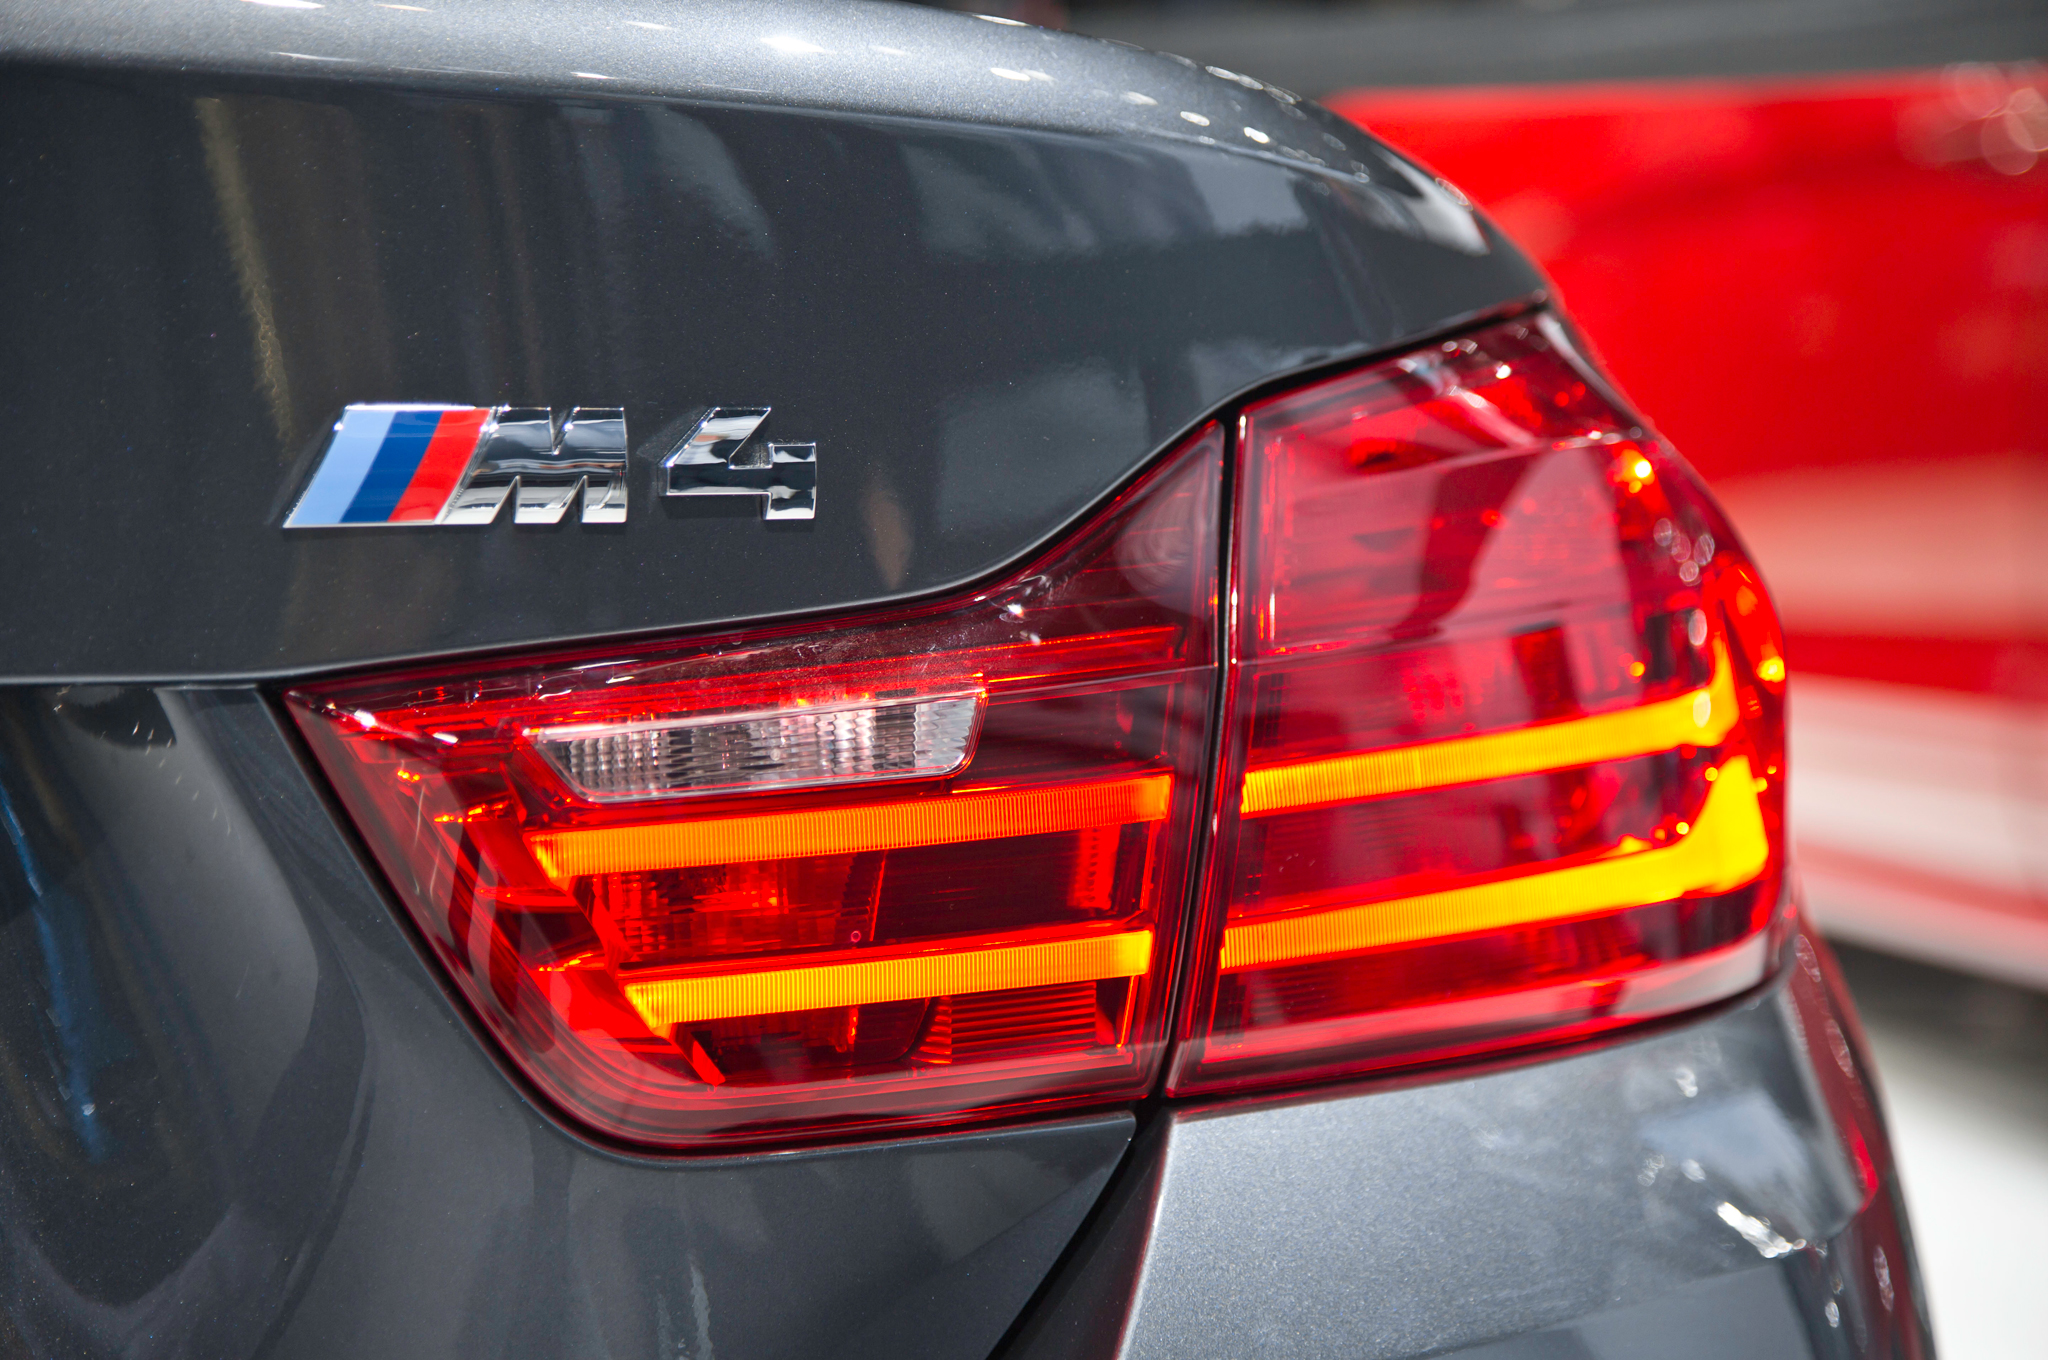 2015 Bmw M4 Convertible Rear Taillight (Photo 41 of 50)